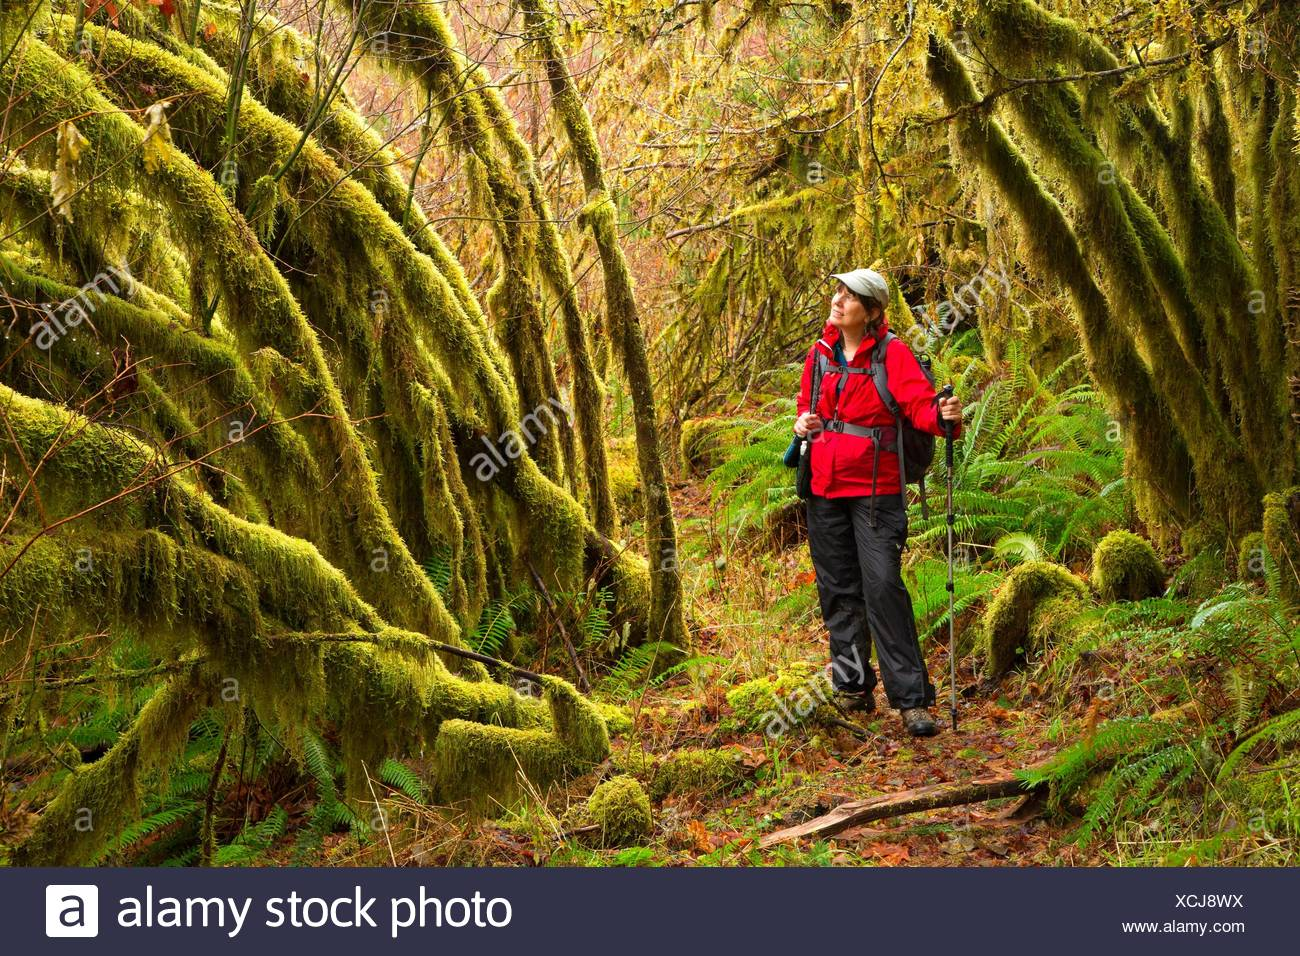 Spruce Run Creek Trail, Clatsop State Forest, Oregon. - Stock Image